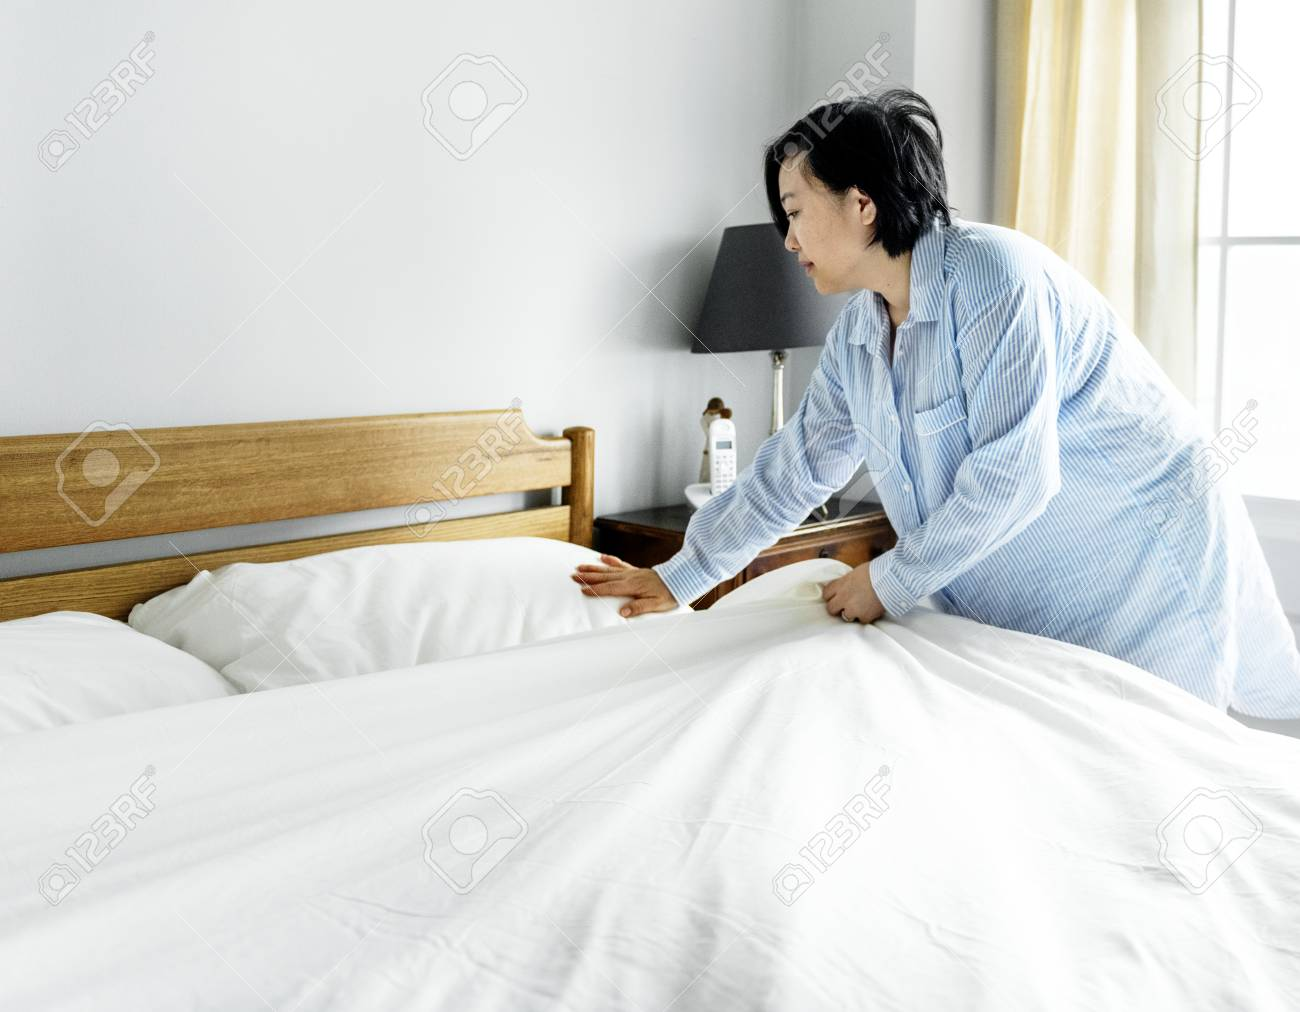 A Woman Making Bed Stock Photo Picture And Royalty Free Image Image 95595899